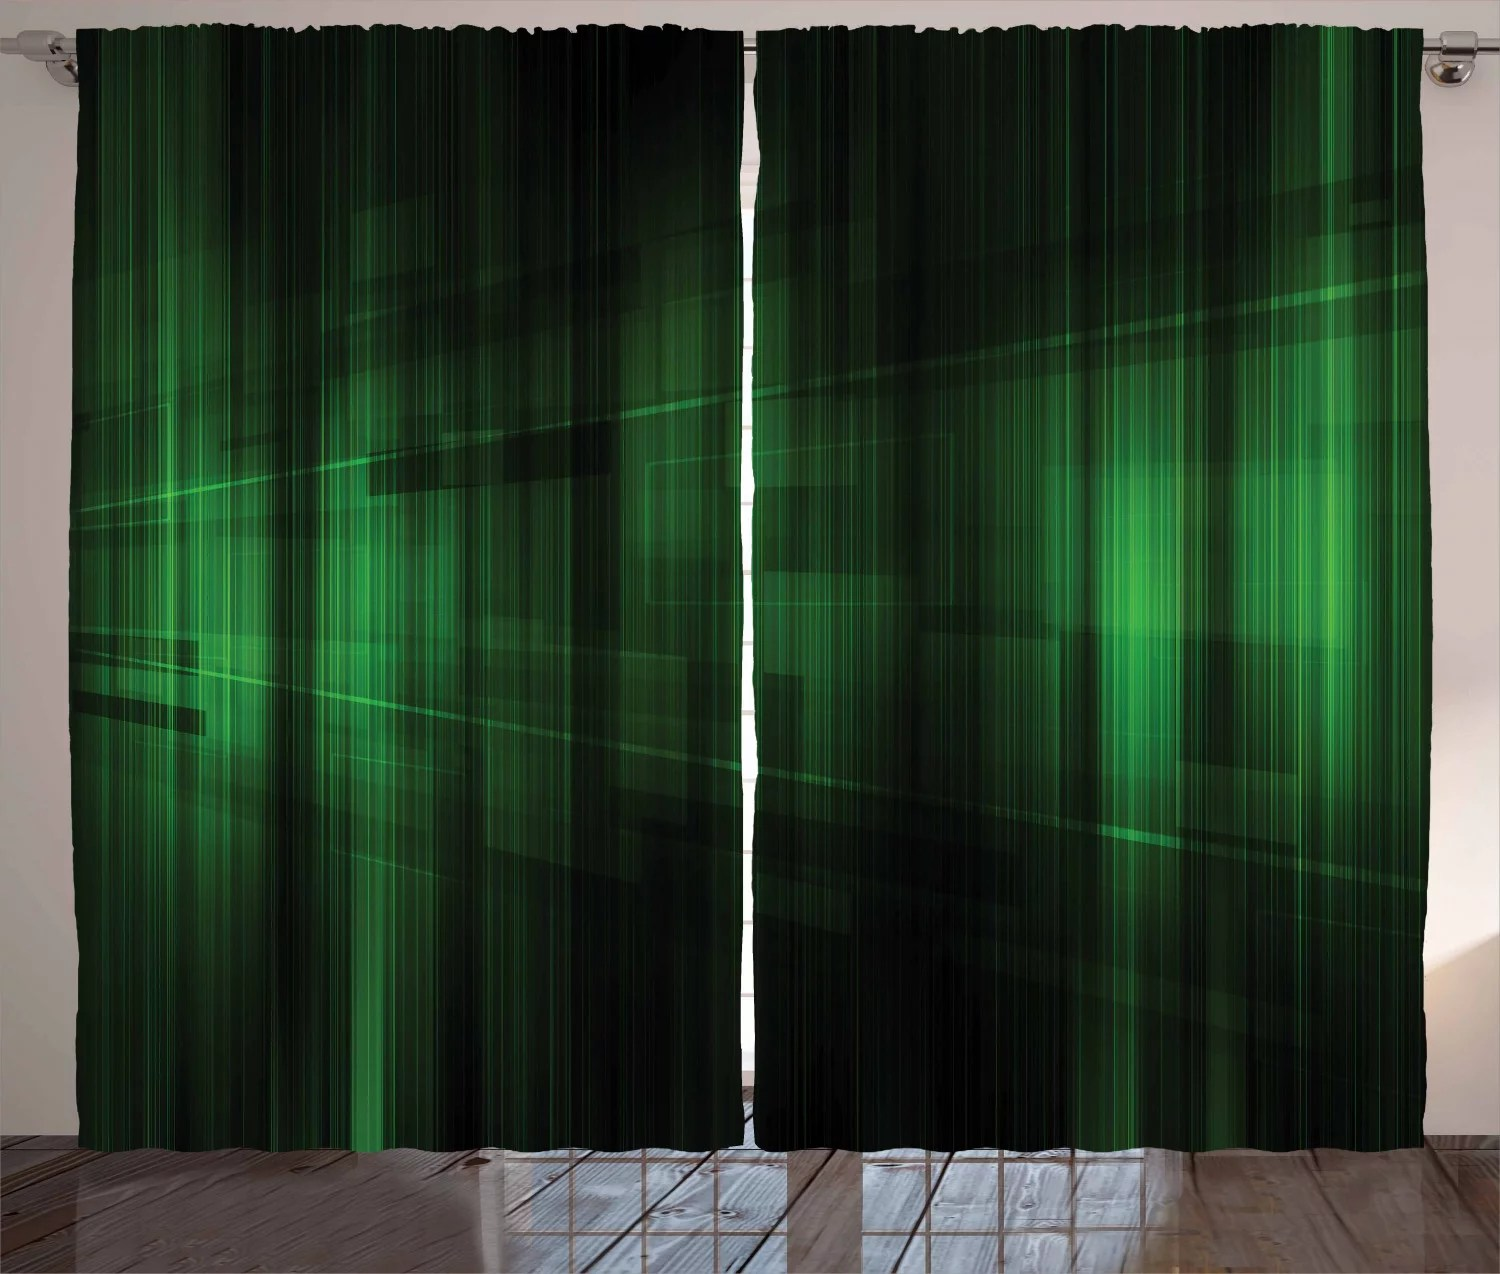 forest green curtains 2 panels set vibrant technology pattern with vertical lines digital technical themed print window drapes for living room